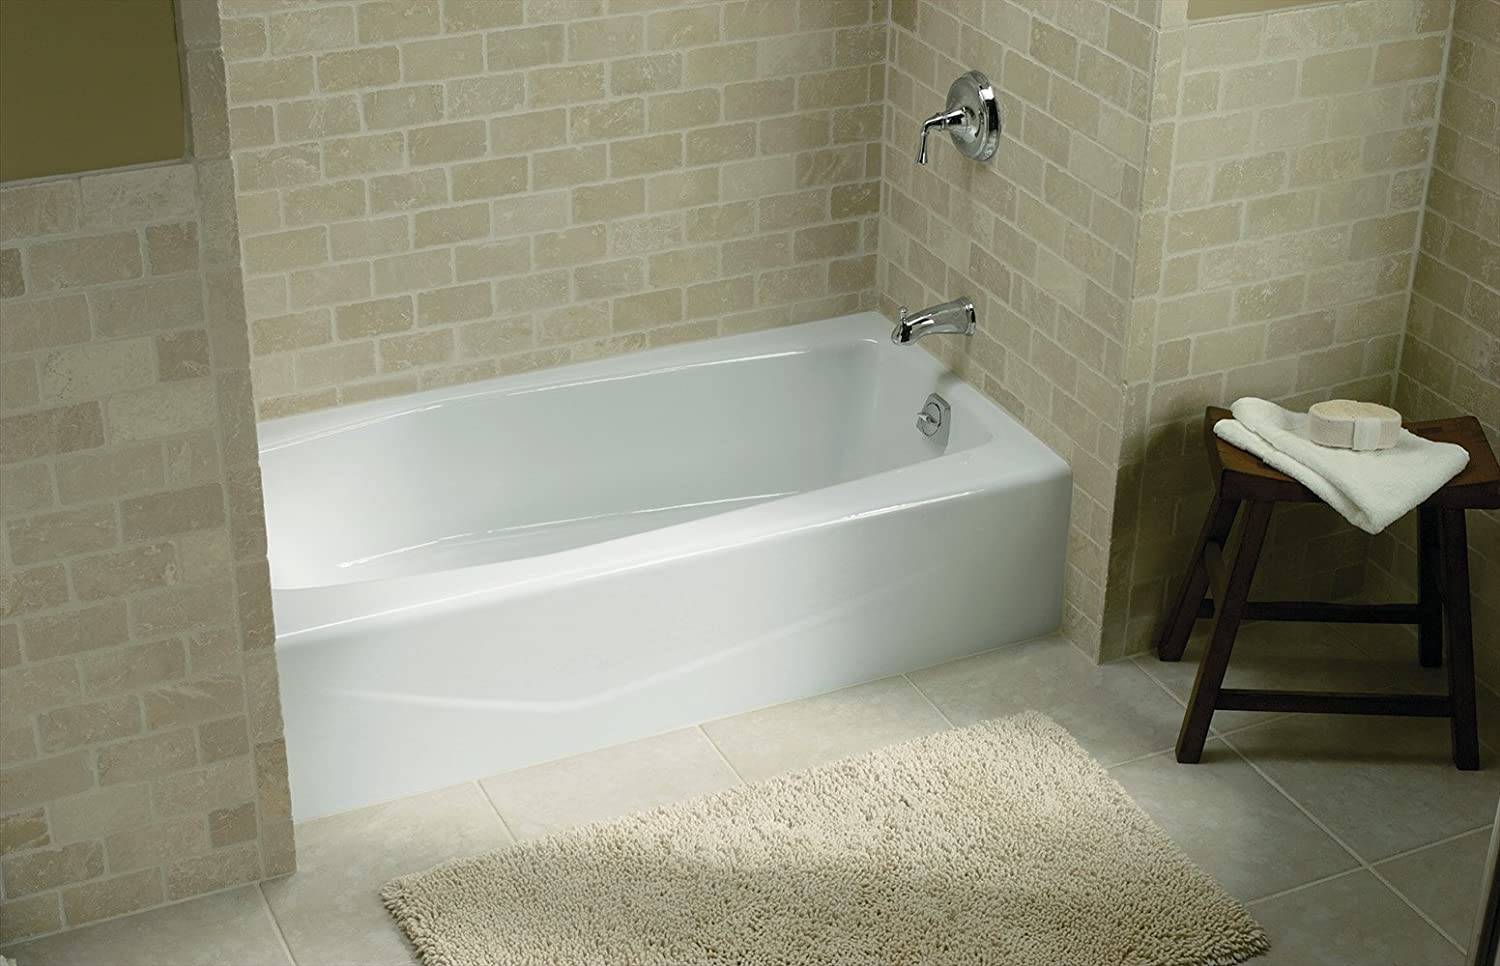 Genial KOHLER K 716 0 Villager Bath With Right Hand Drain, White   Freestanding  Bathtubs   Amazon.com